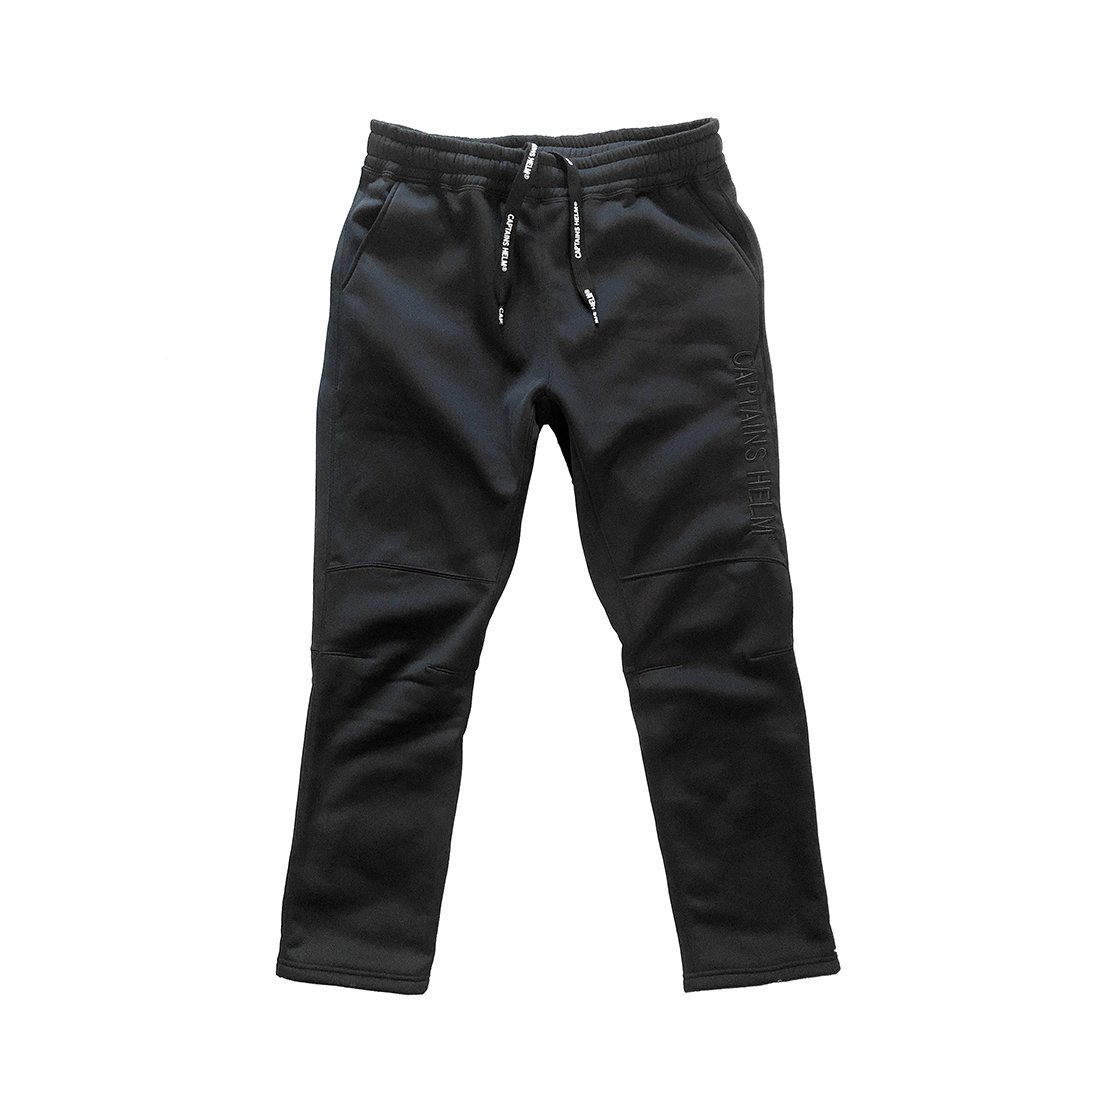 CAPTAINS HELM #TRADEMARK TEC PANTS -Limited Color